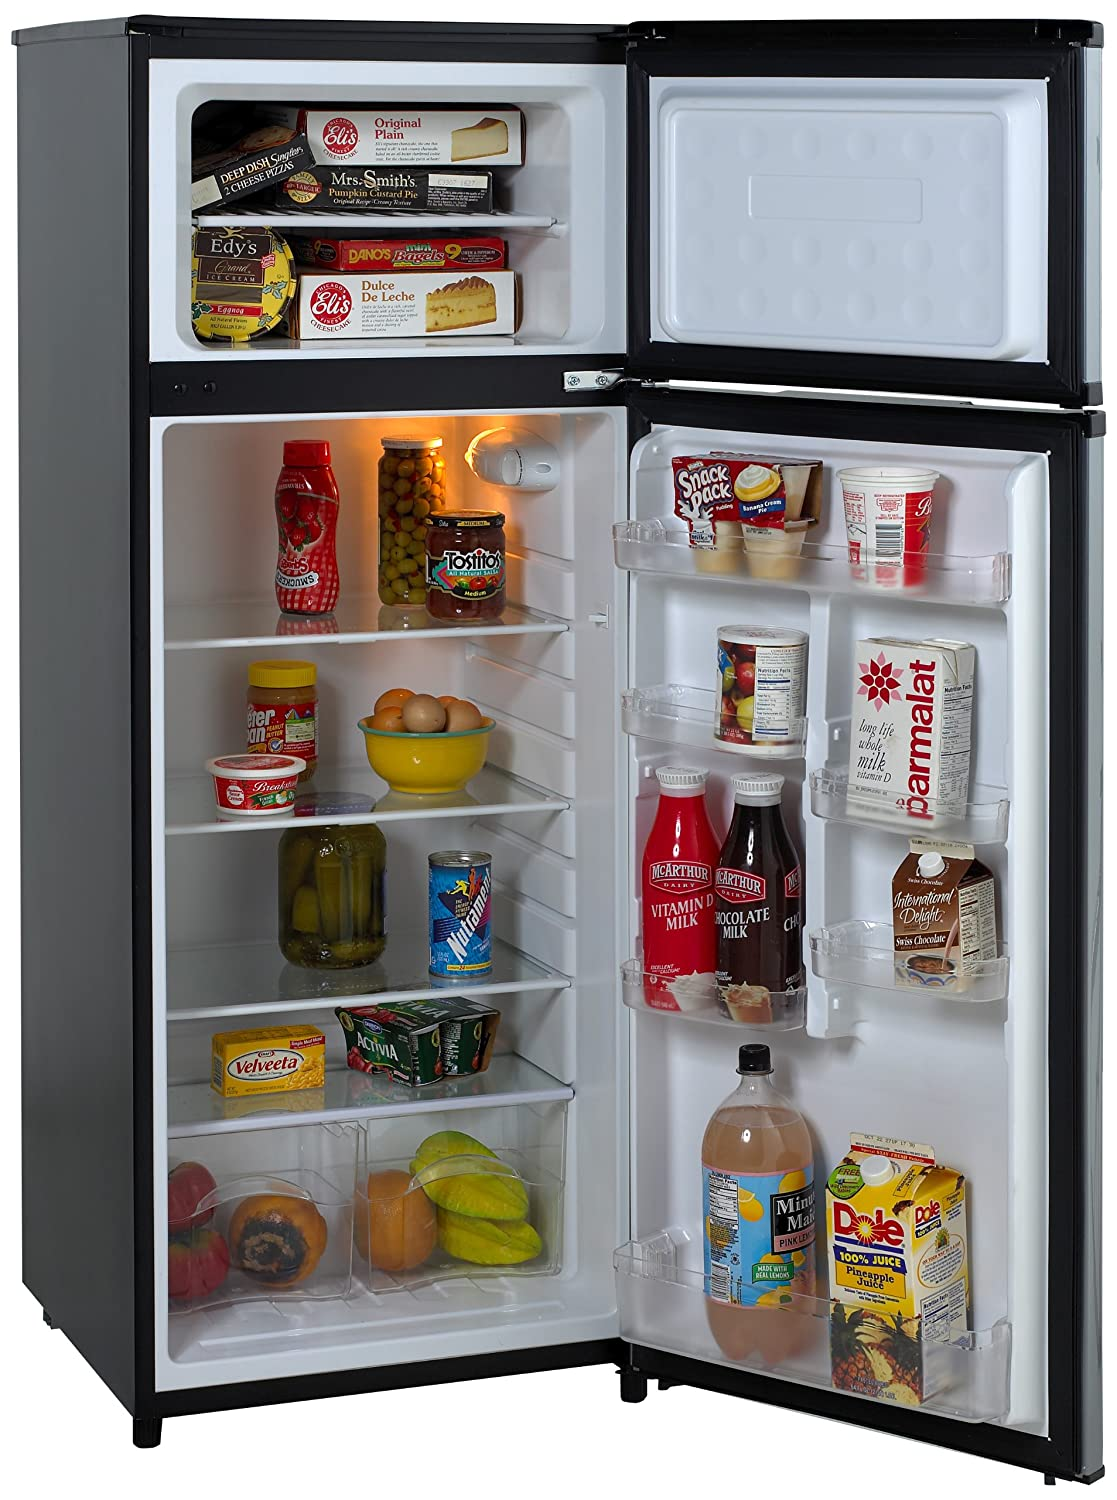 superb Apartment Size Appliances Kitchen #7: Amazon.com: Avanti RA7316PST 2-Door Apartment Size Refrigerator, Black with  Platinum Finish: Appliances